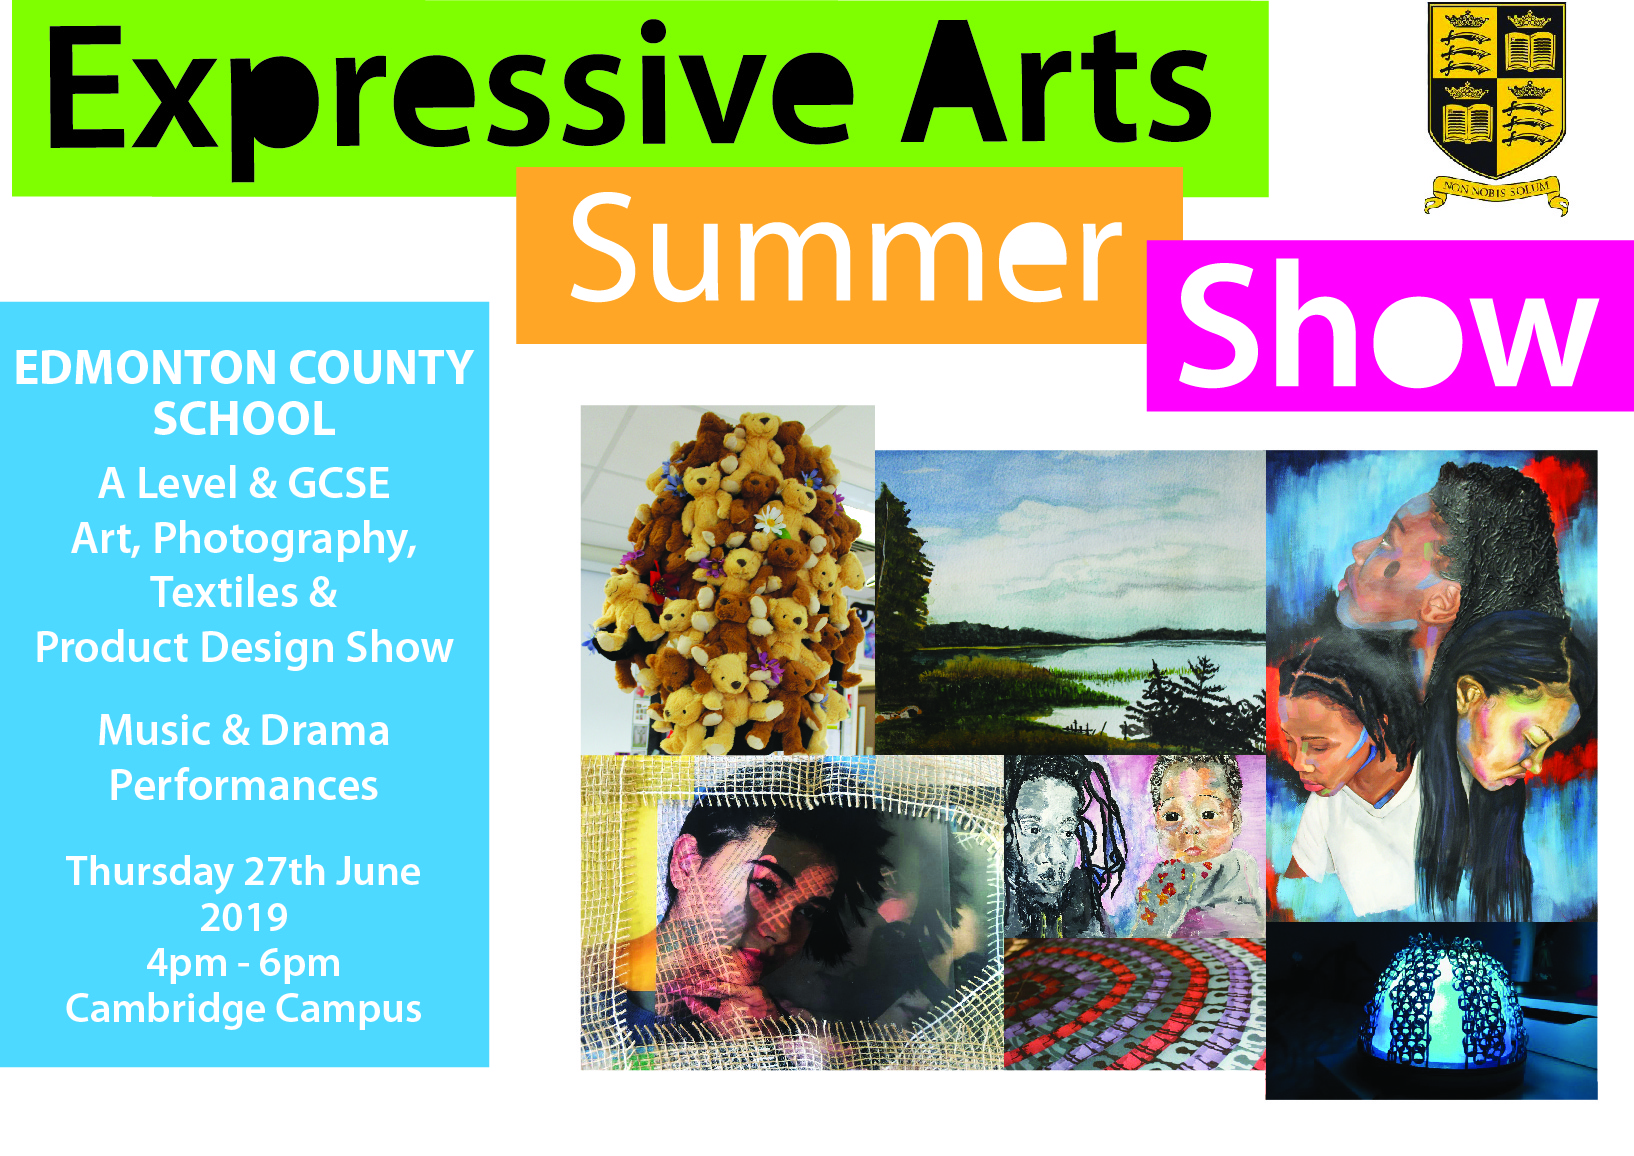 Expressive Arts Summer Show - Thursday 27th June 2019